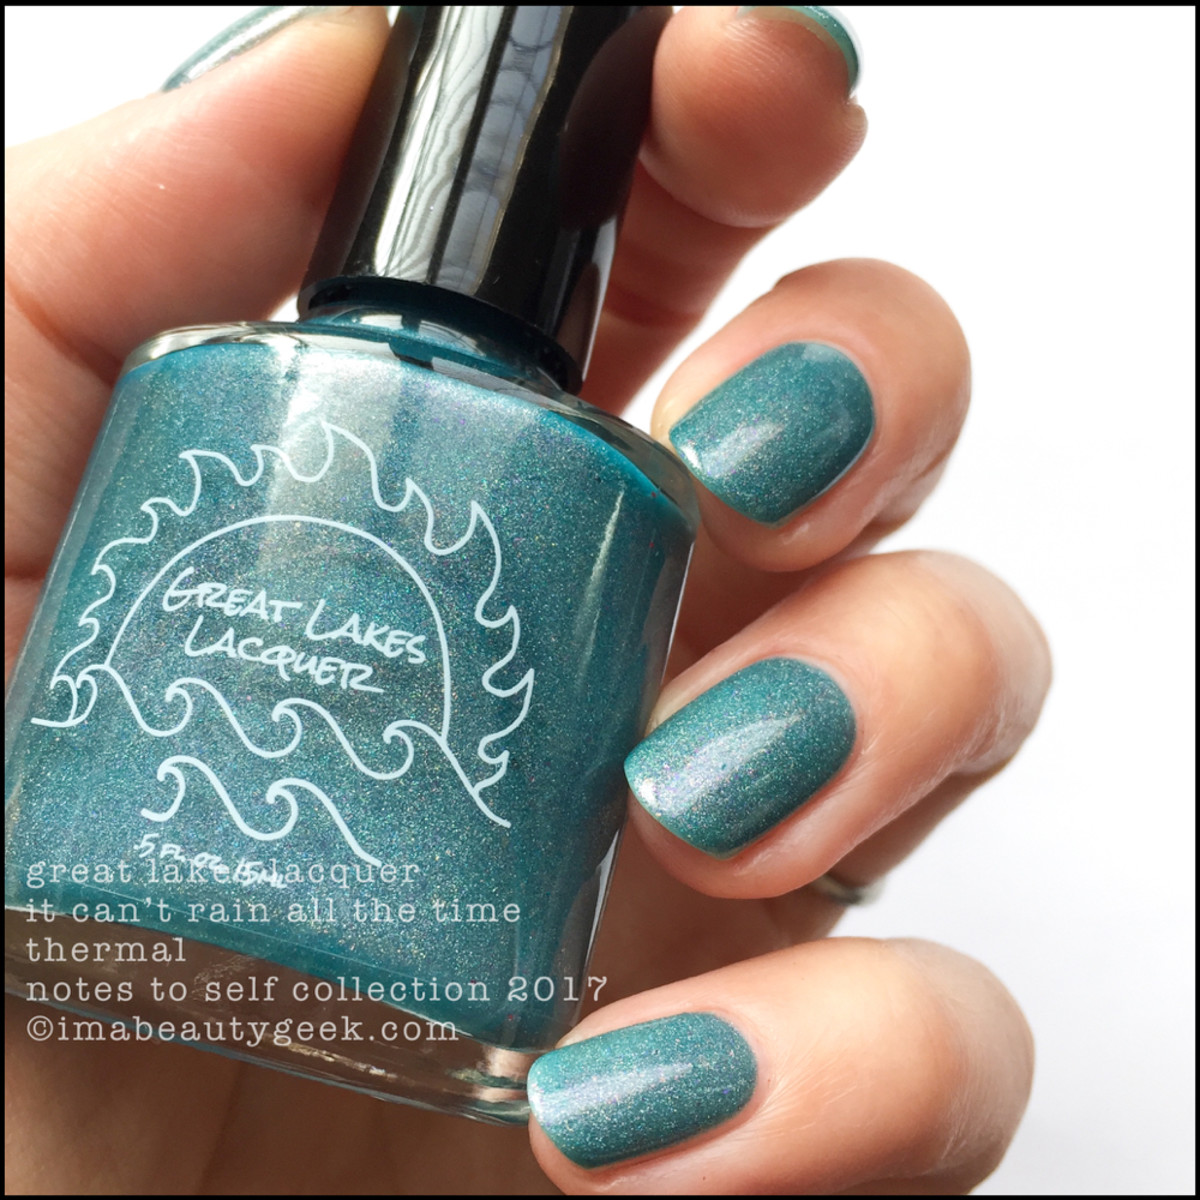 Great Lakes Lacquer It Can't Rain All The Time 1 _ Great Lakes Lacquer Notes to Self Thermal Collection 2017